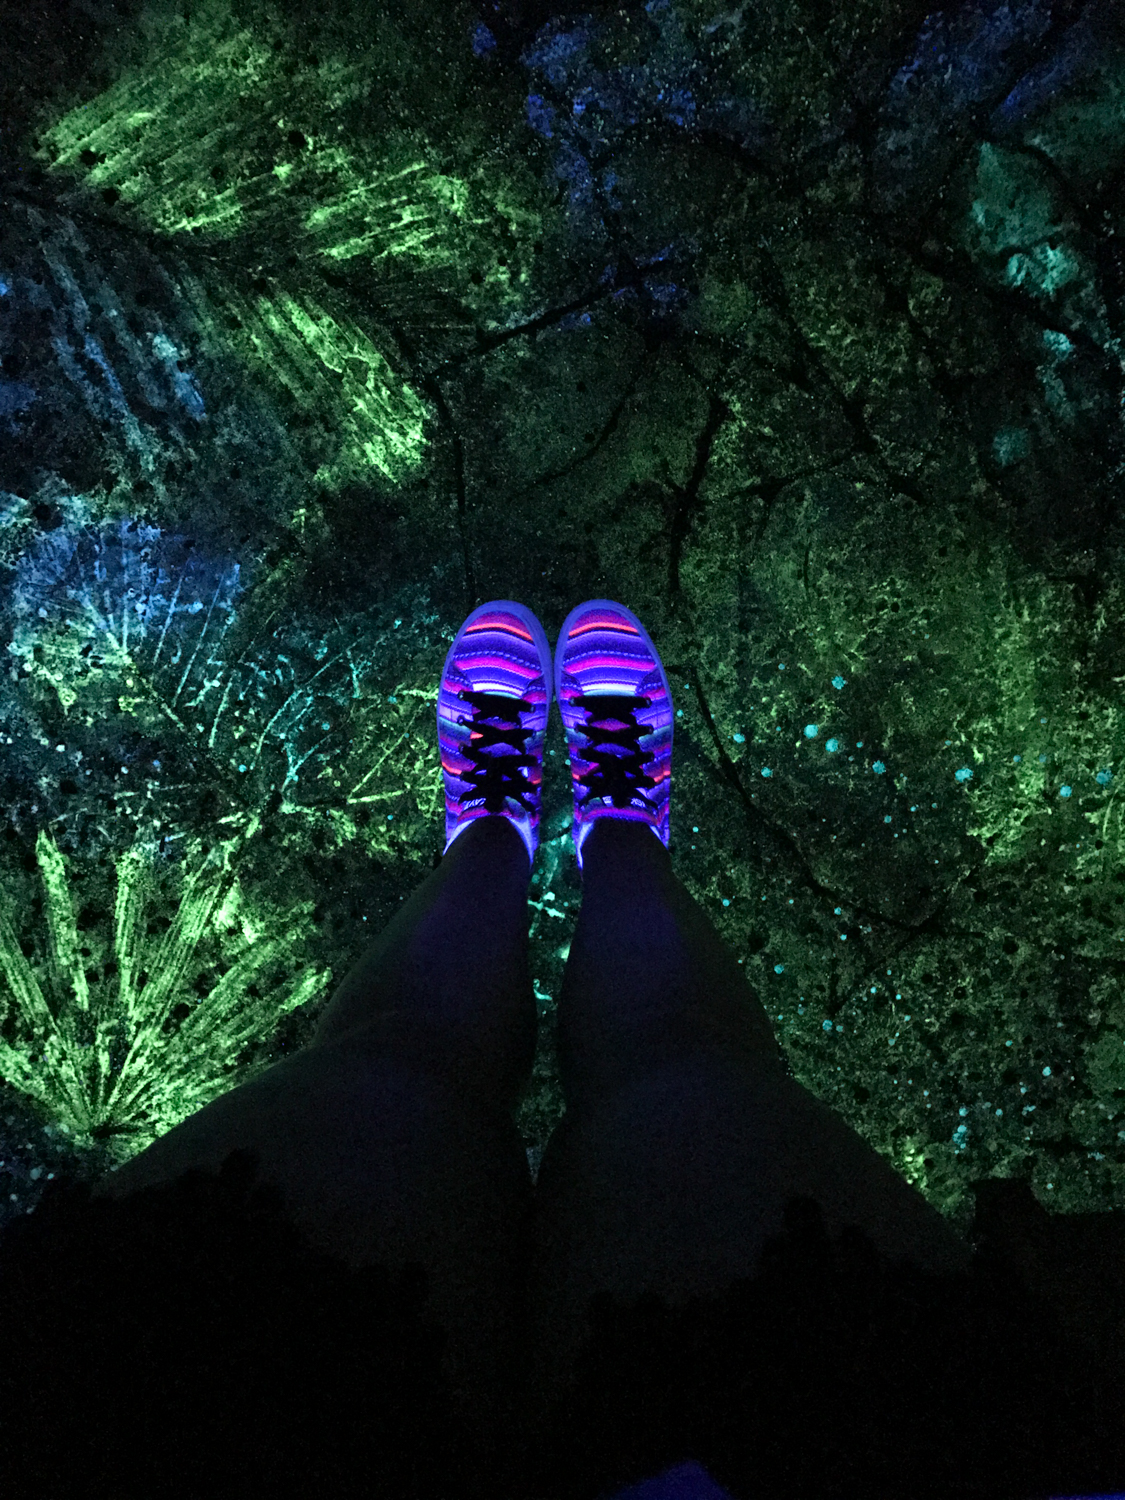 At night, glowing sidewalks light the way in Disney's Pandora - The World of Avatar